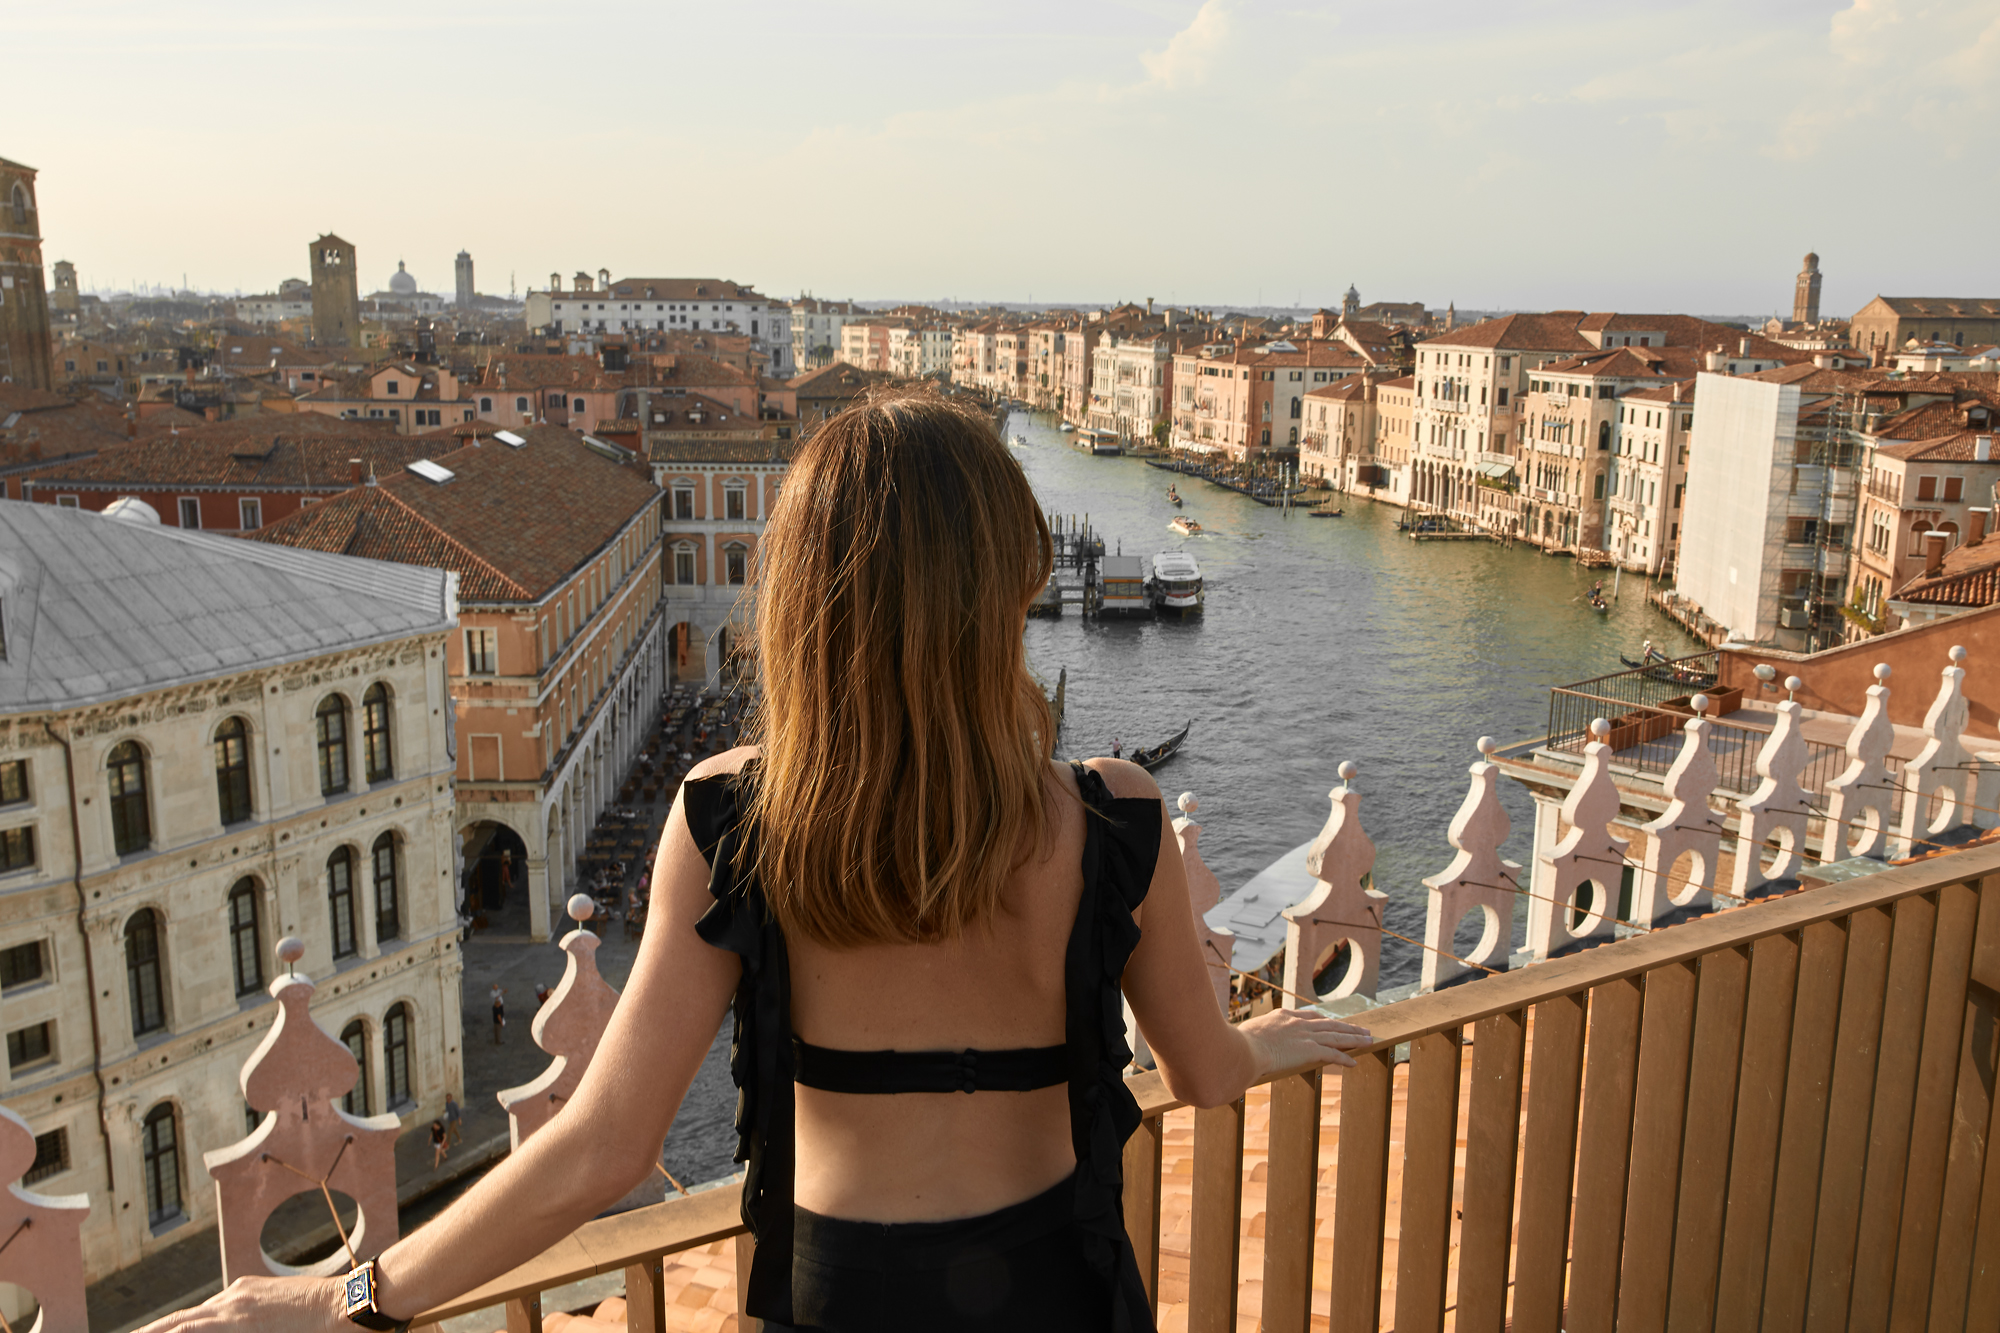 The Best Rooftop In Venice